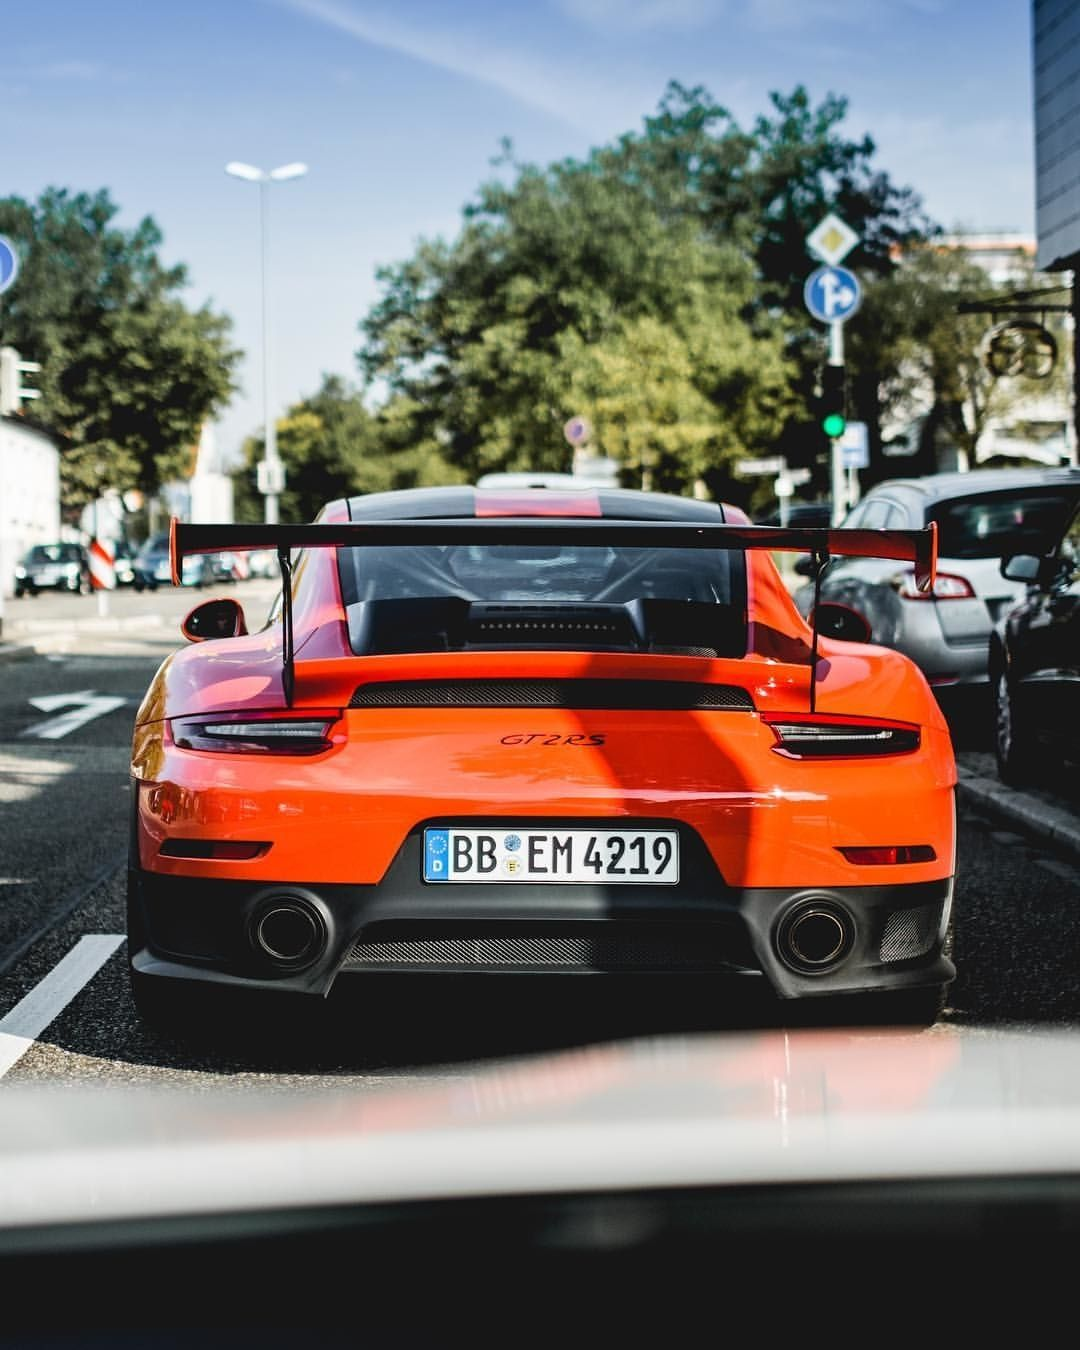 Gt2 Rs Travel In Style Michaellouis Www Michaellouis Com Porsche Porsche Gt Porsche Carrera Gt